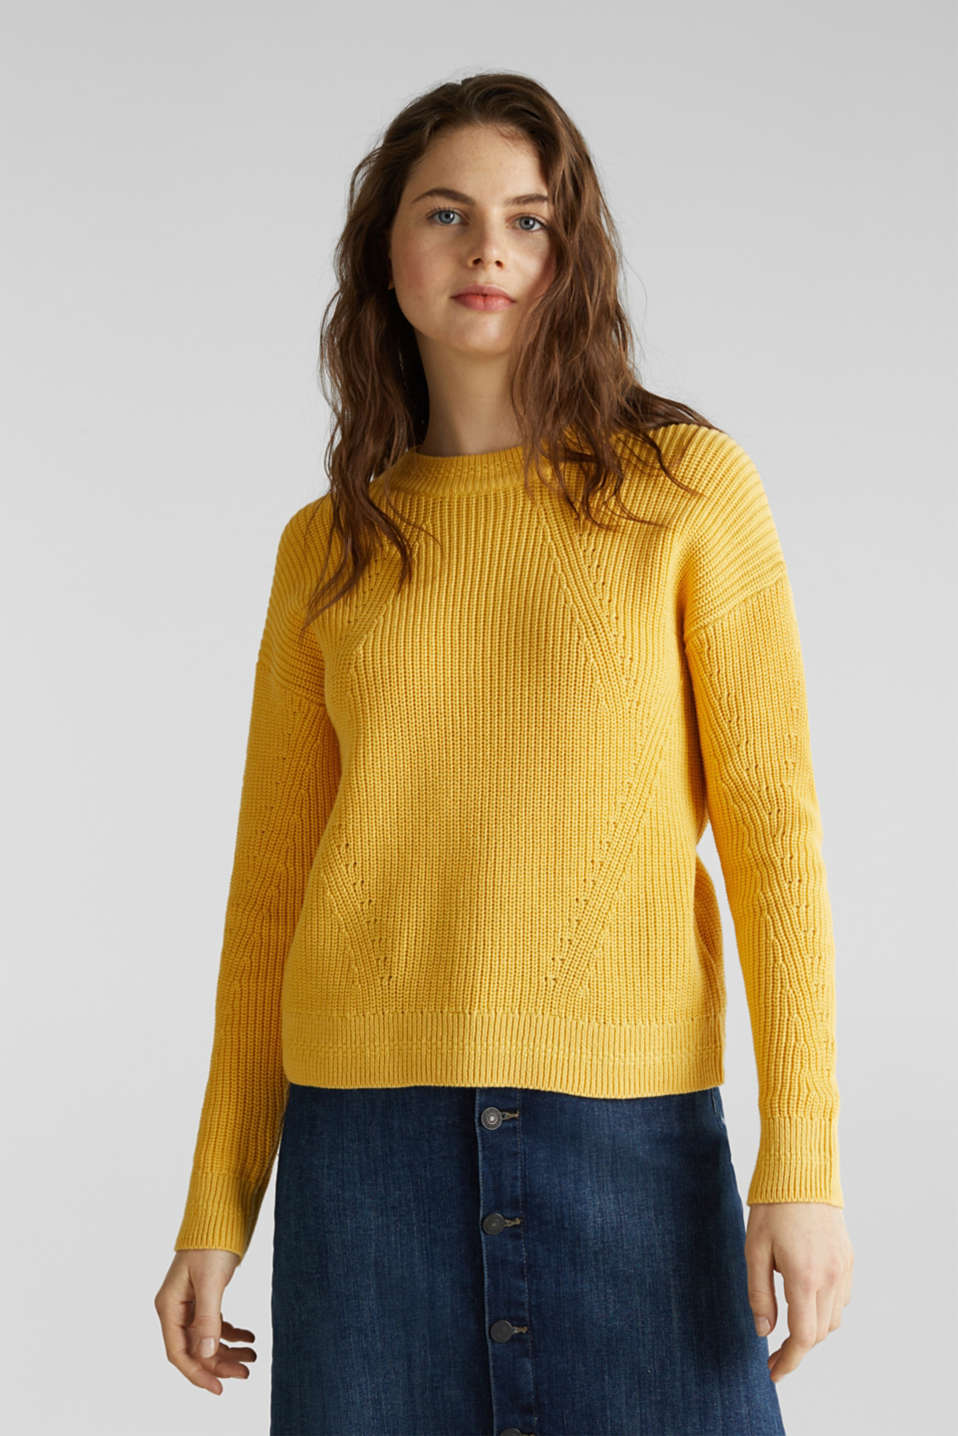 Jumper with textured details, 100% cotton, YELLOW, detail image number 0